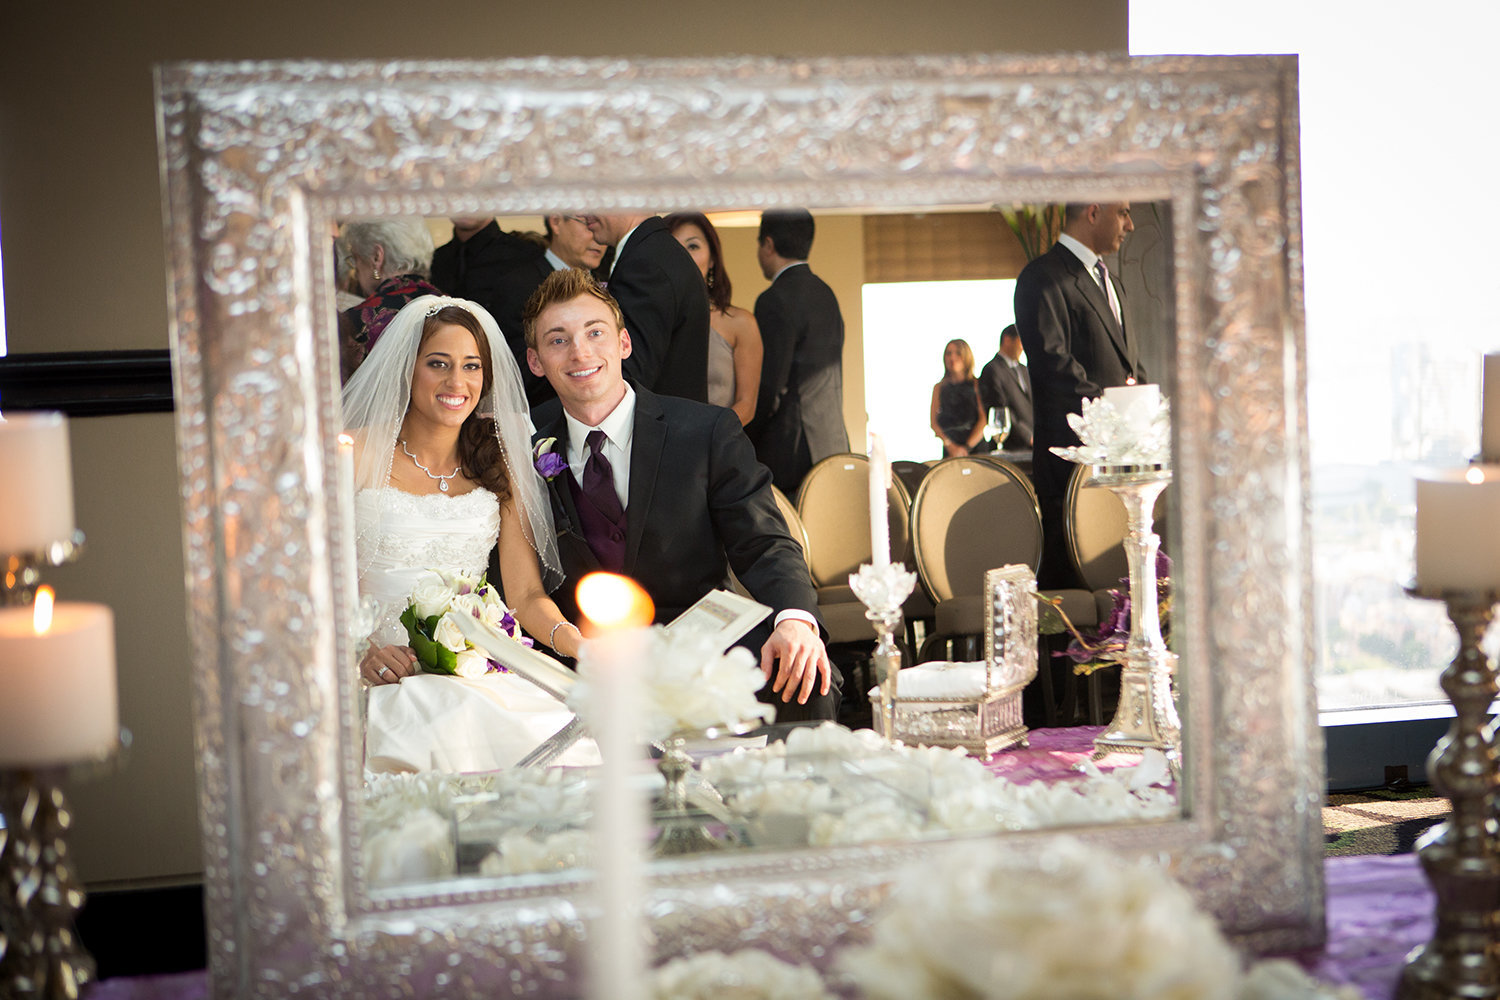 Portrait of bride and groom at persian wedding through mirror